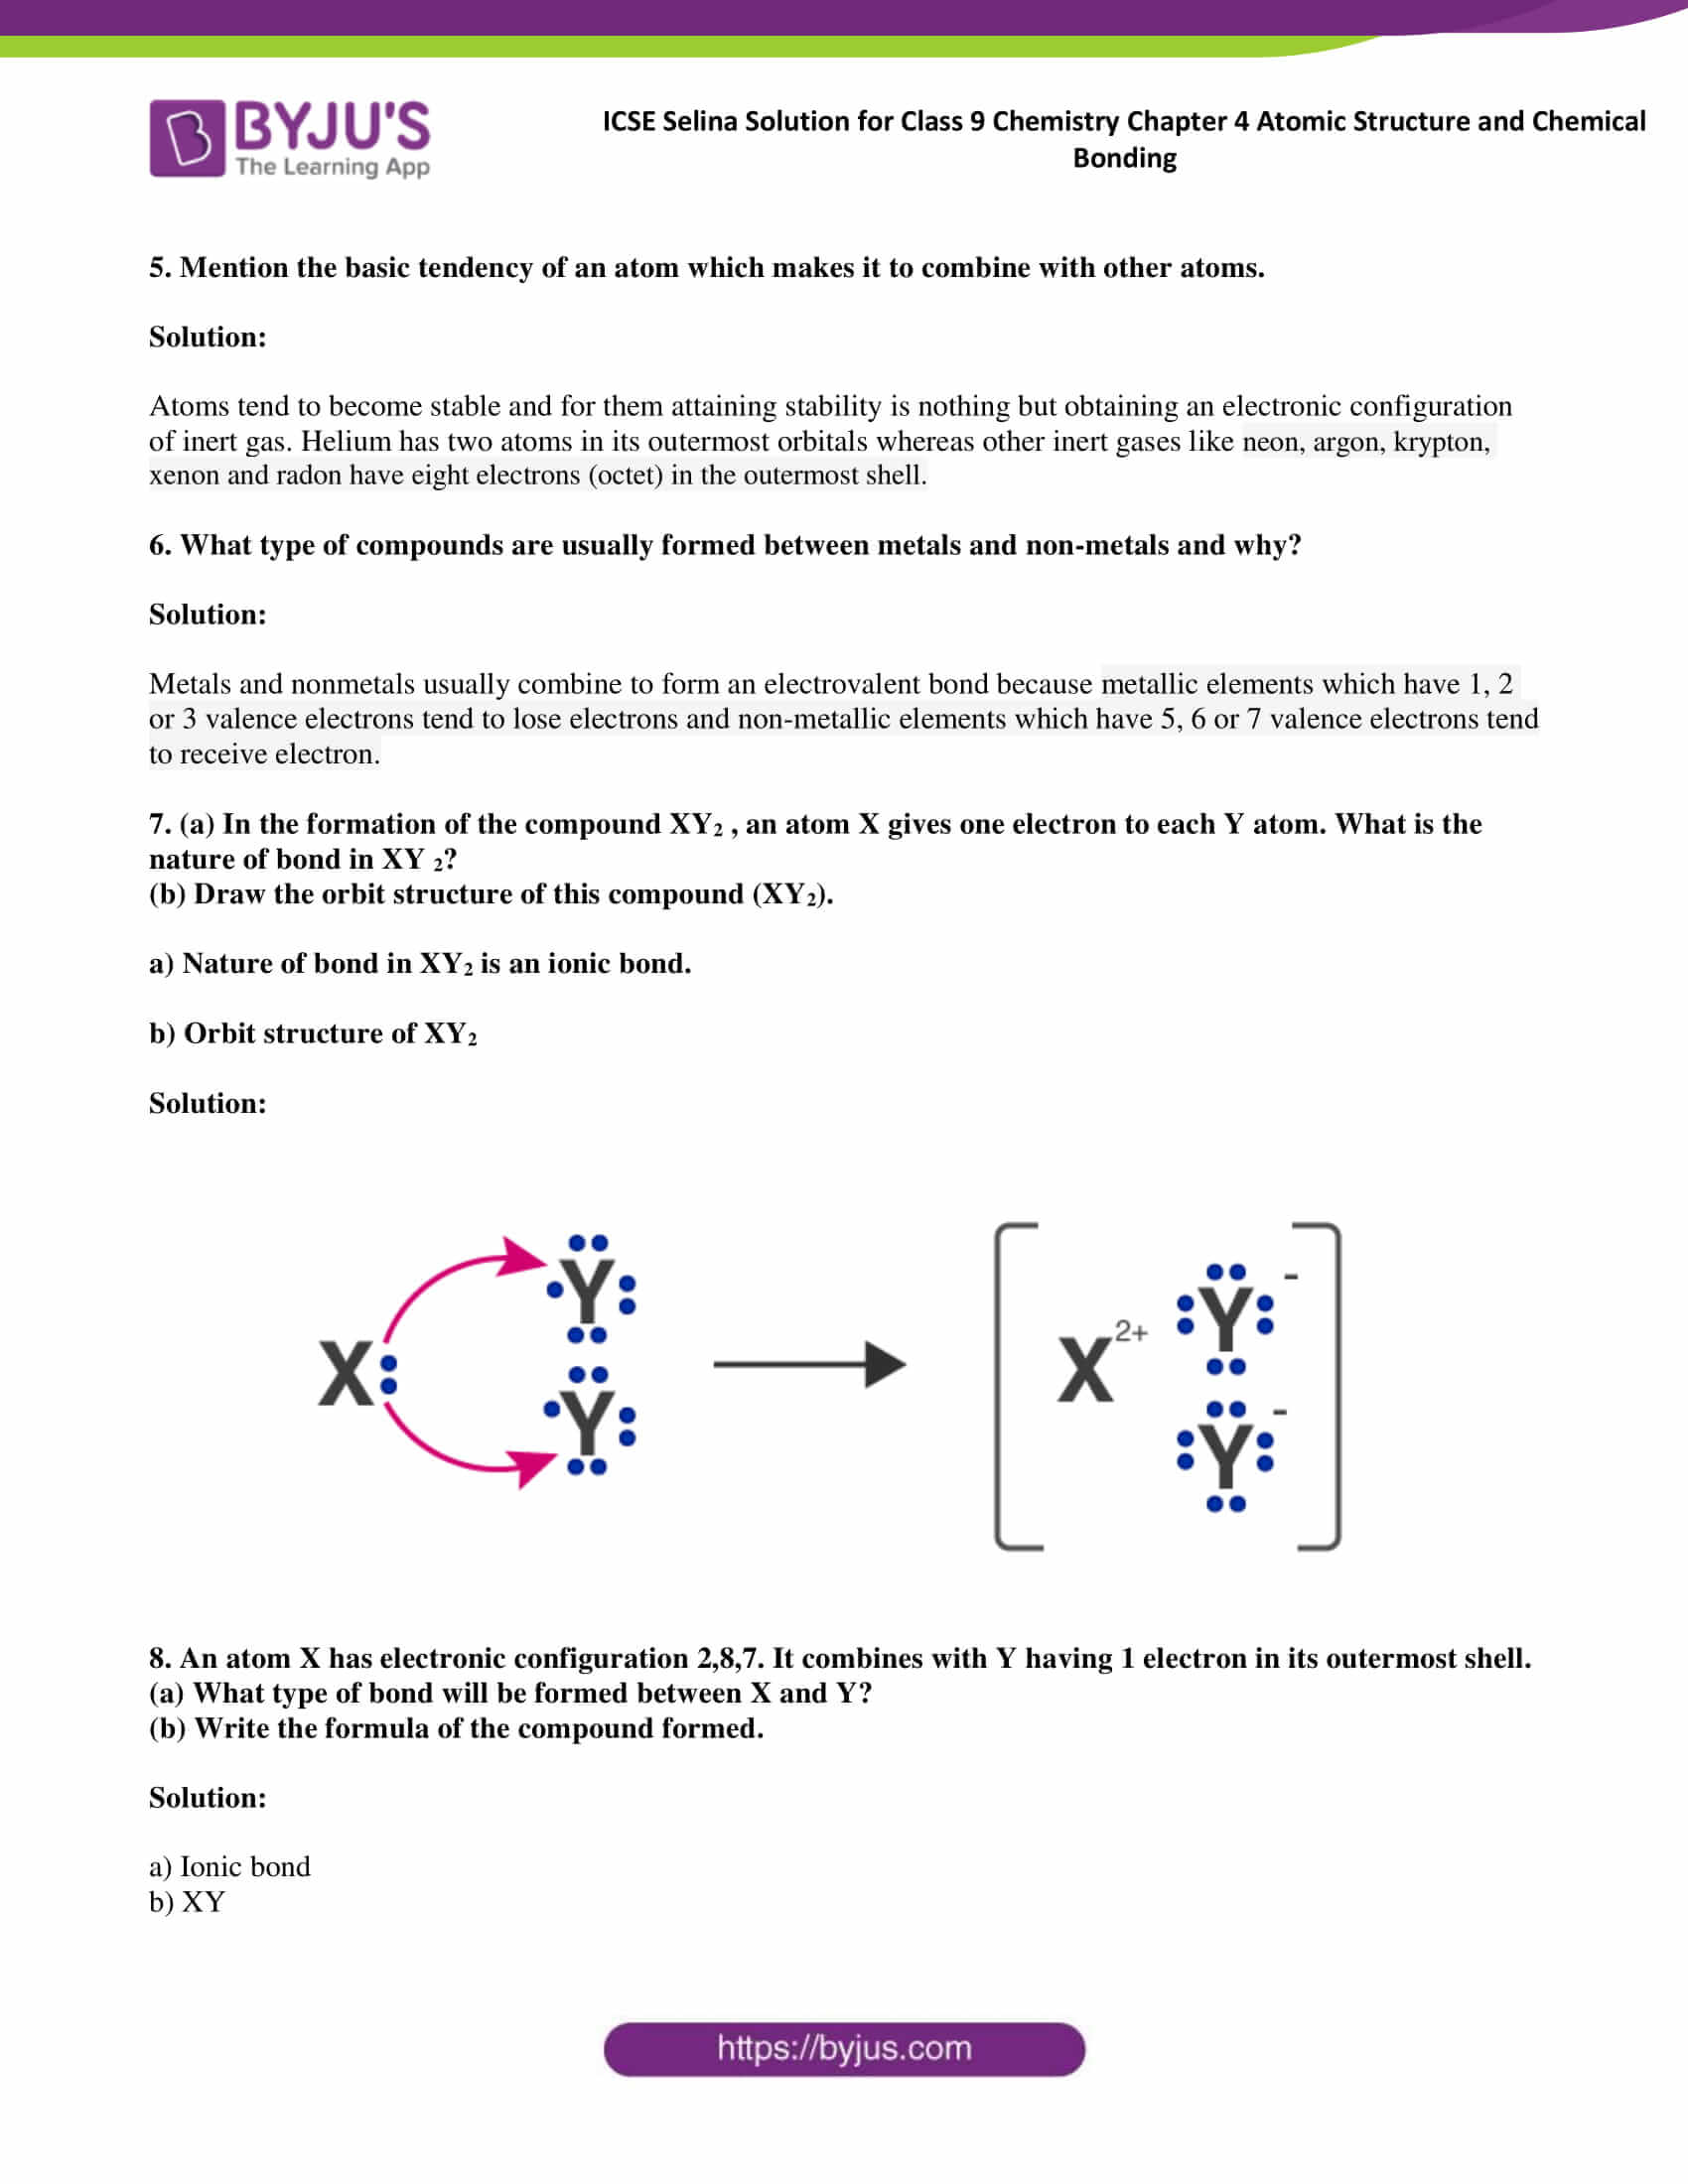 ICSE Selina Solution for class 9 Chemistry Chapter 4 Ex part 20